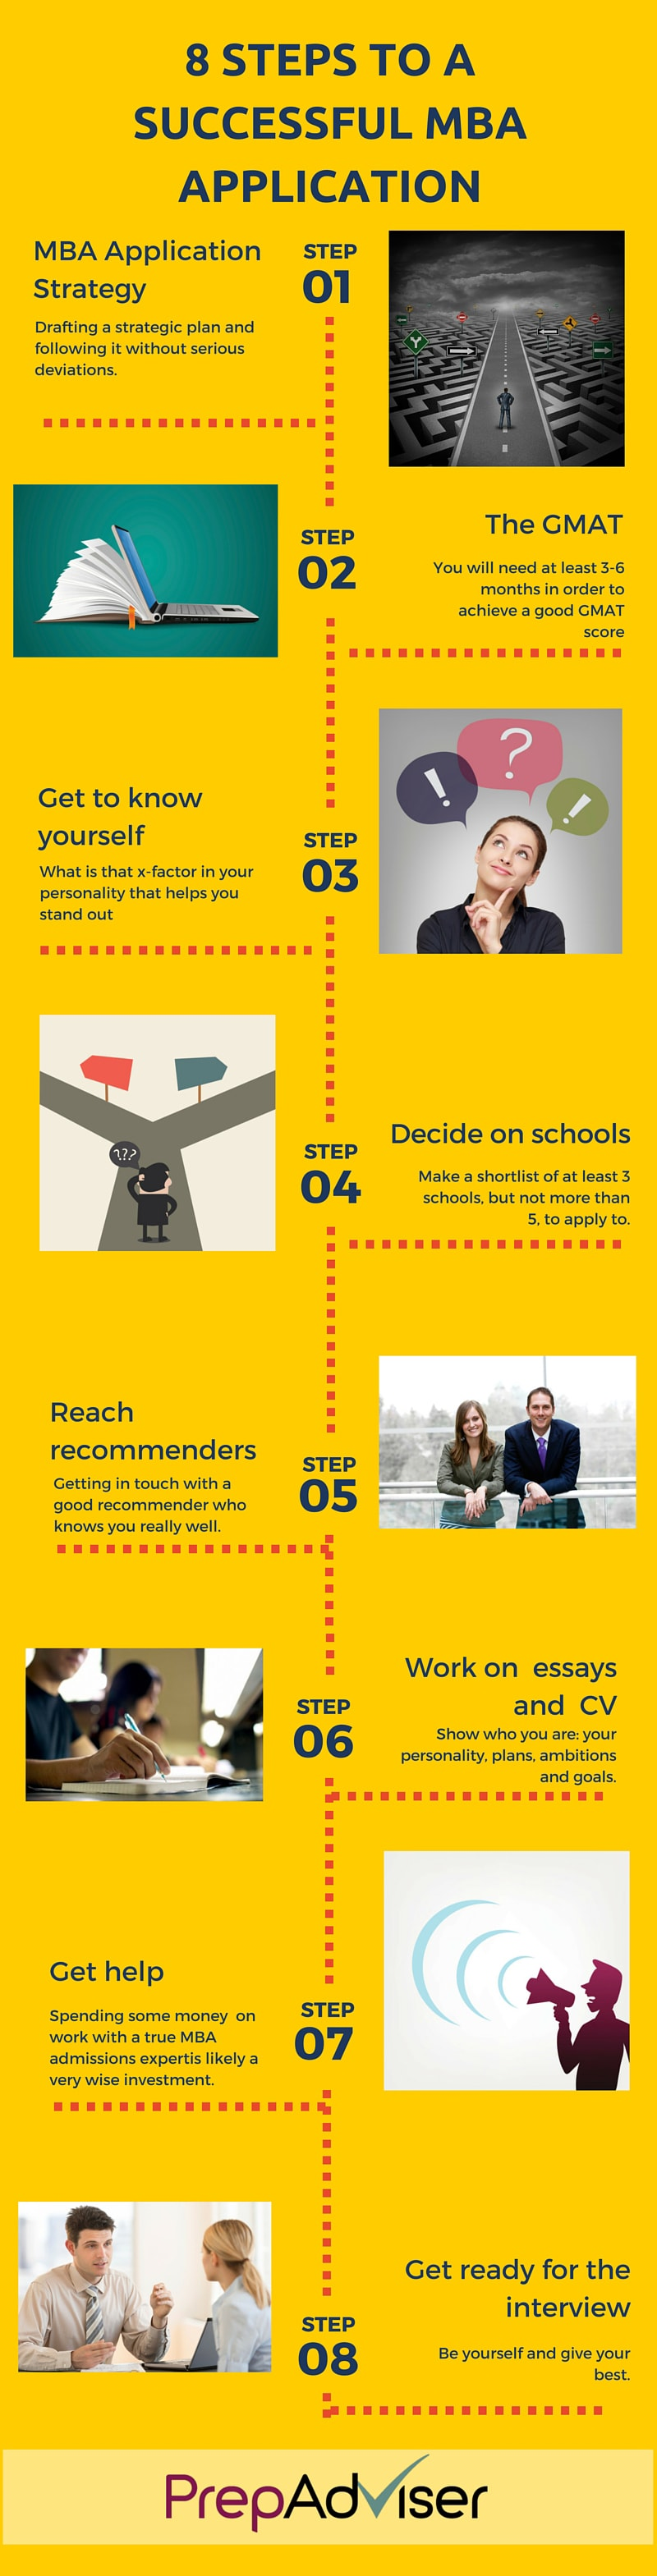 8 Steps for a Successful MBA